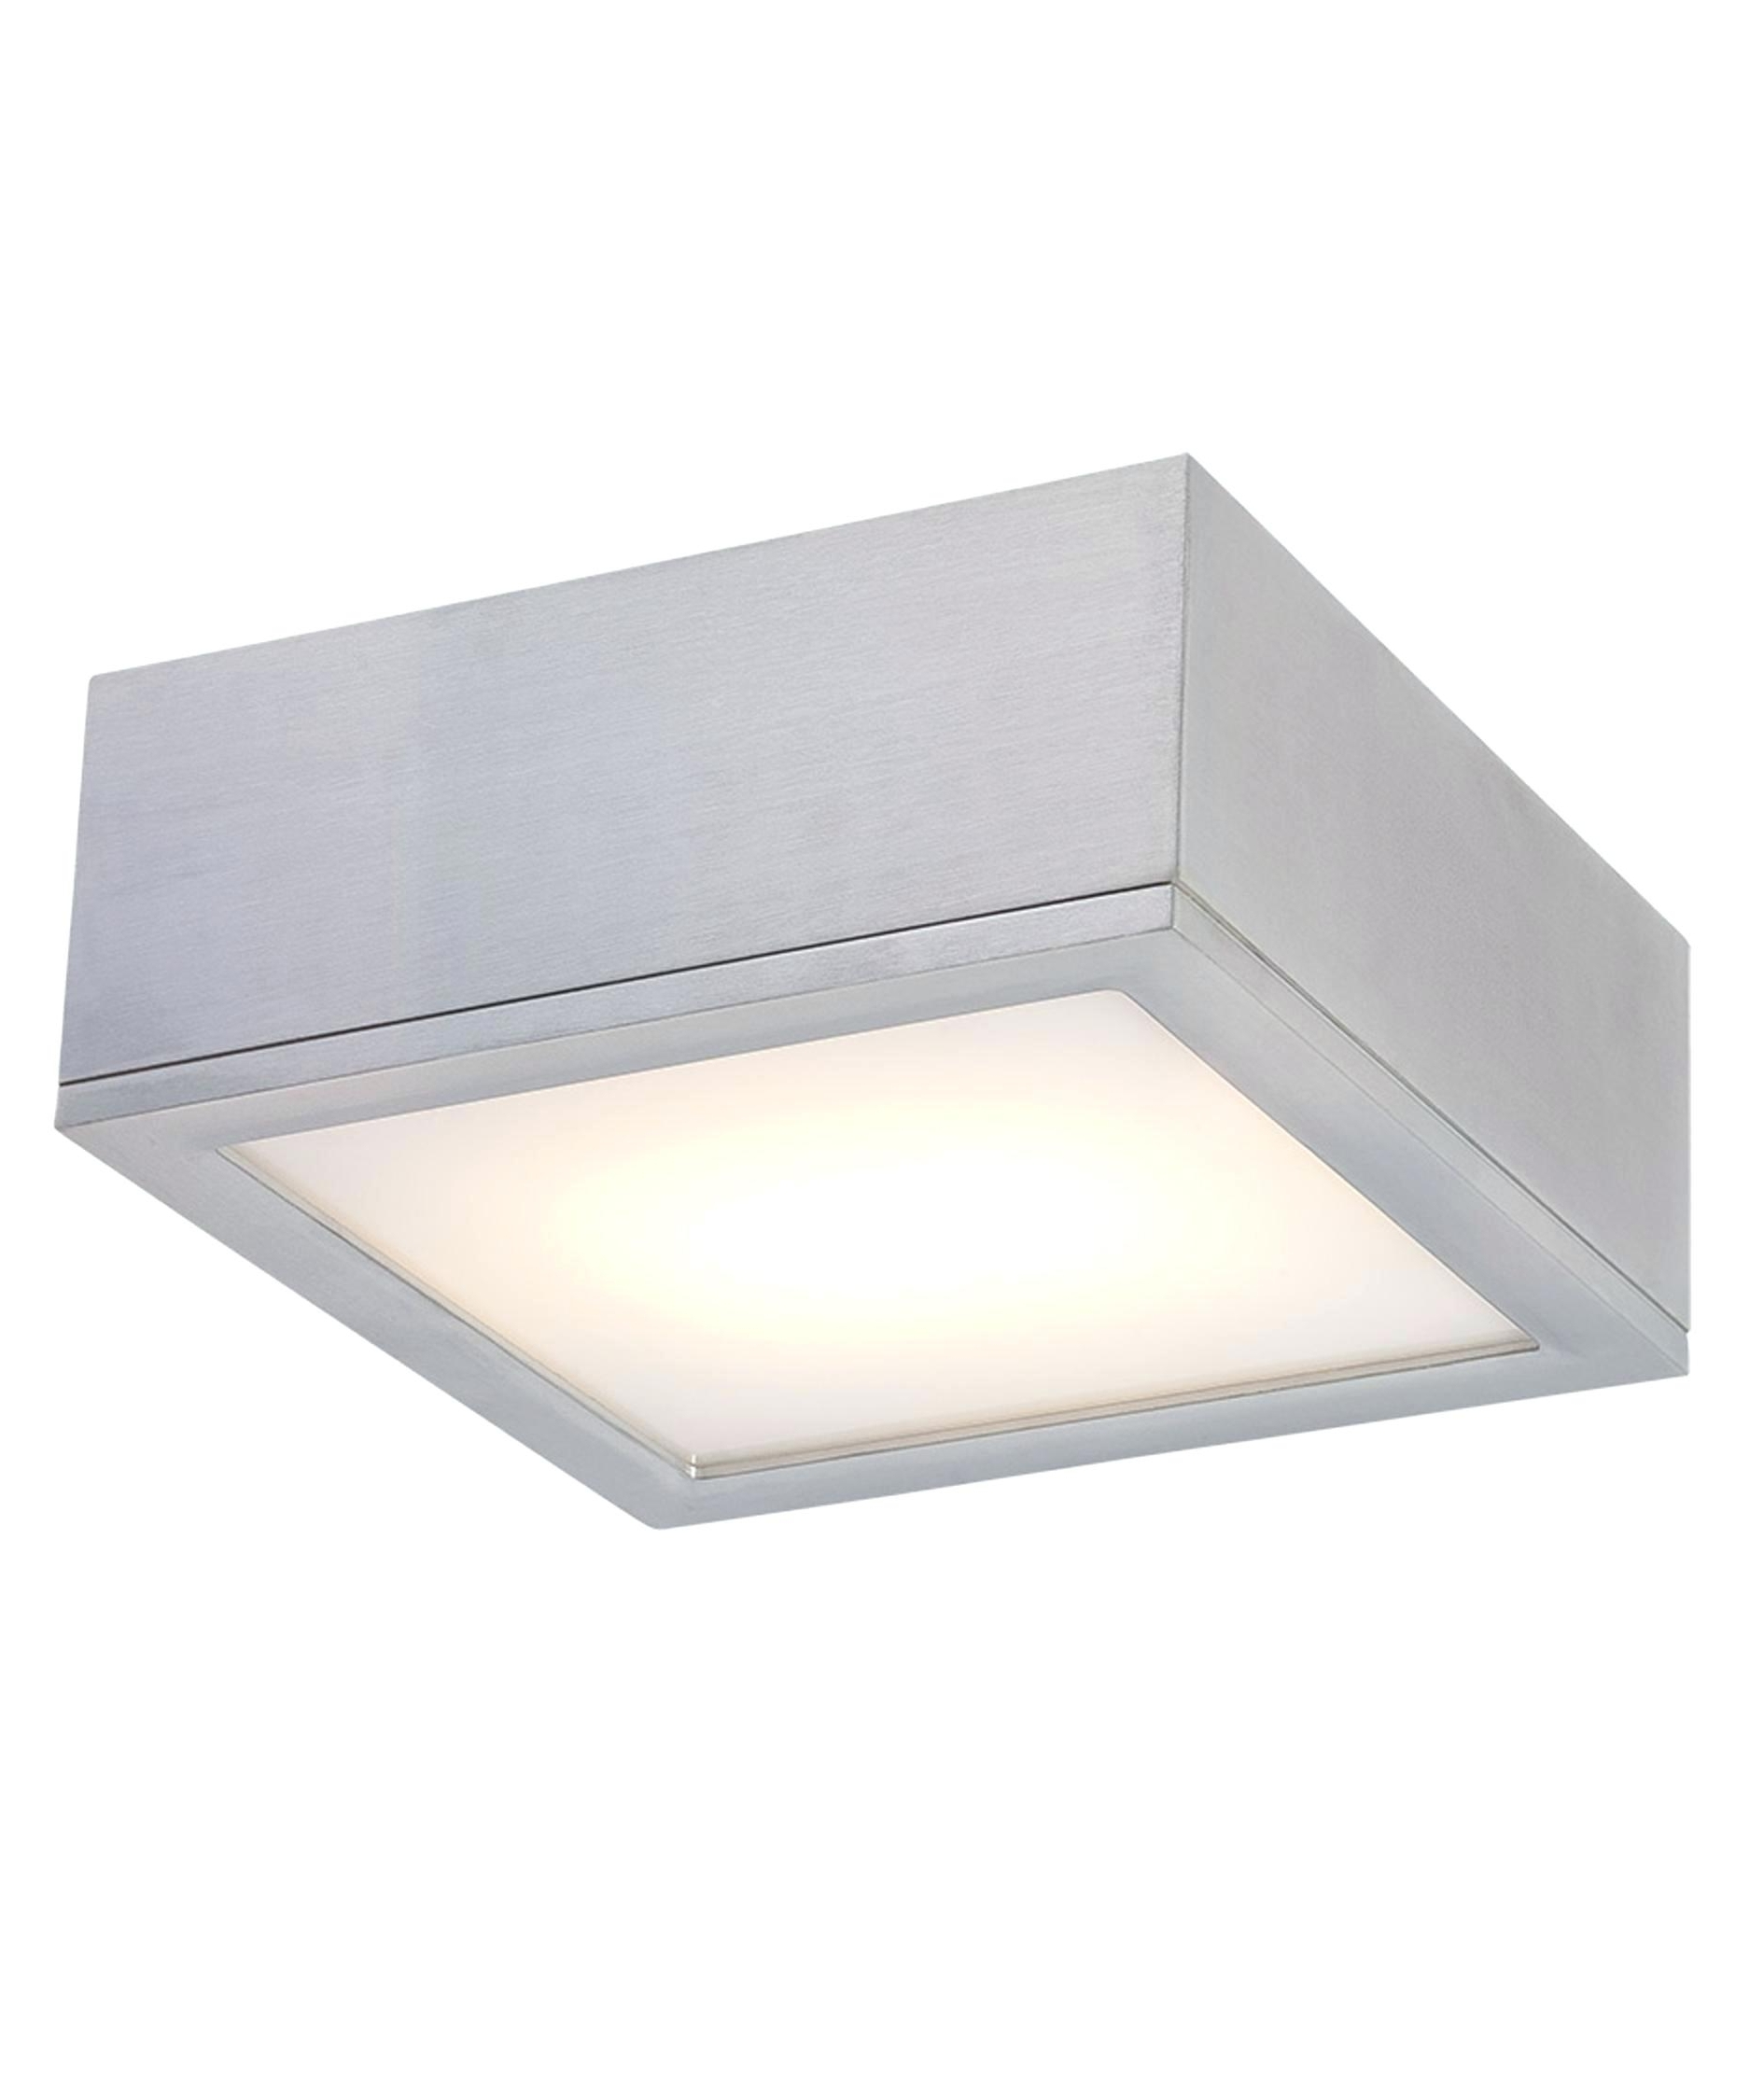 2019 Outdoor Ceiling Mounted Pir Light • Ceiling Lights With Regard To Outdoor Ceiling Lights With Pir (View 20 of 20)